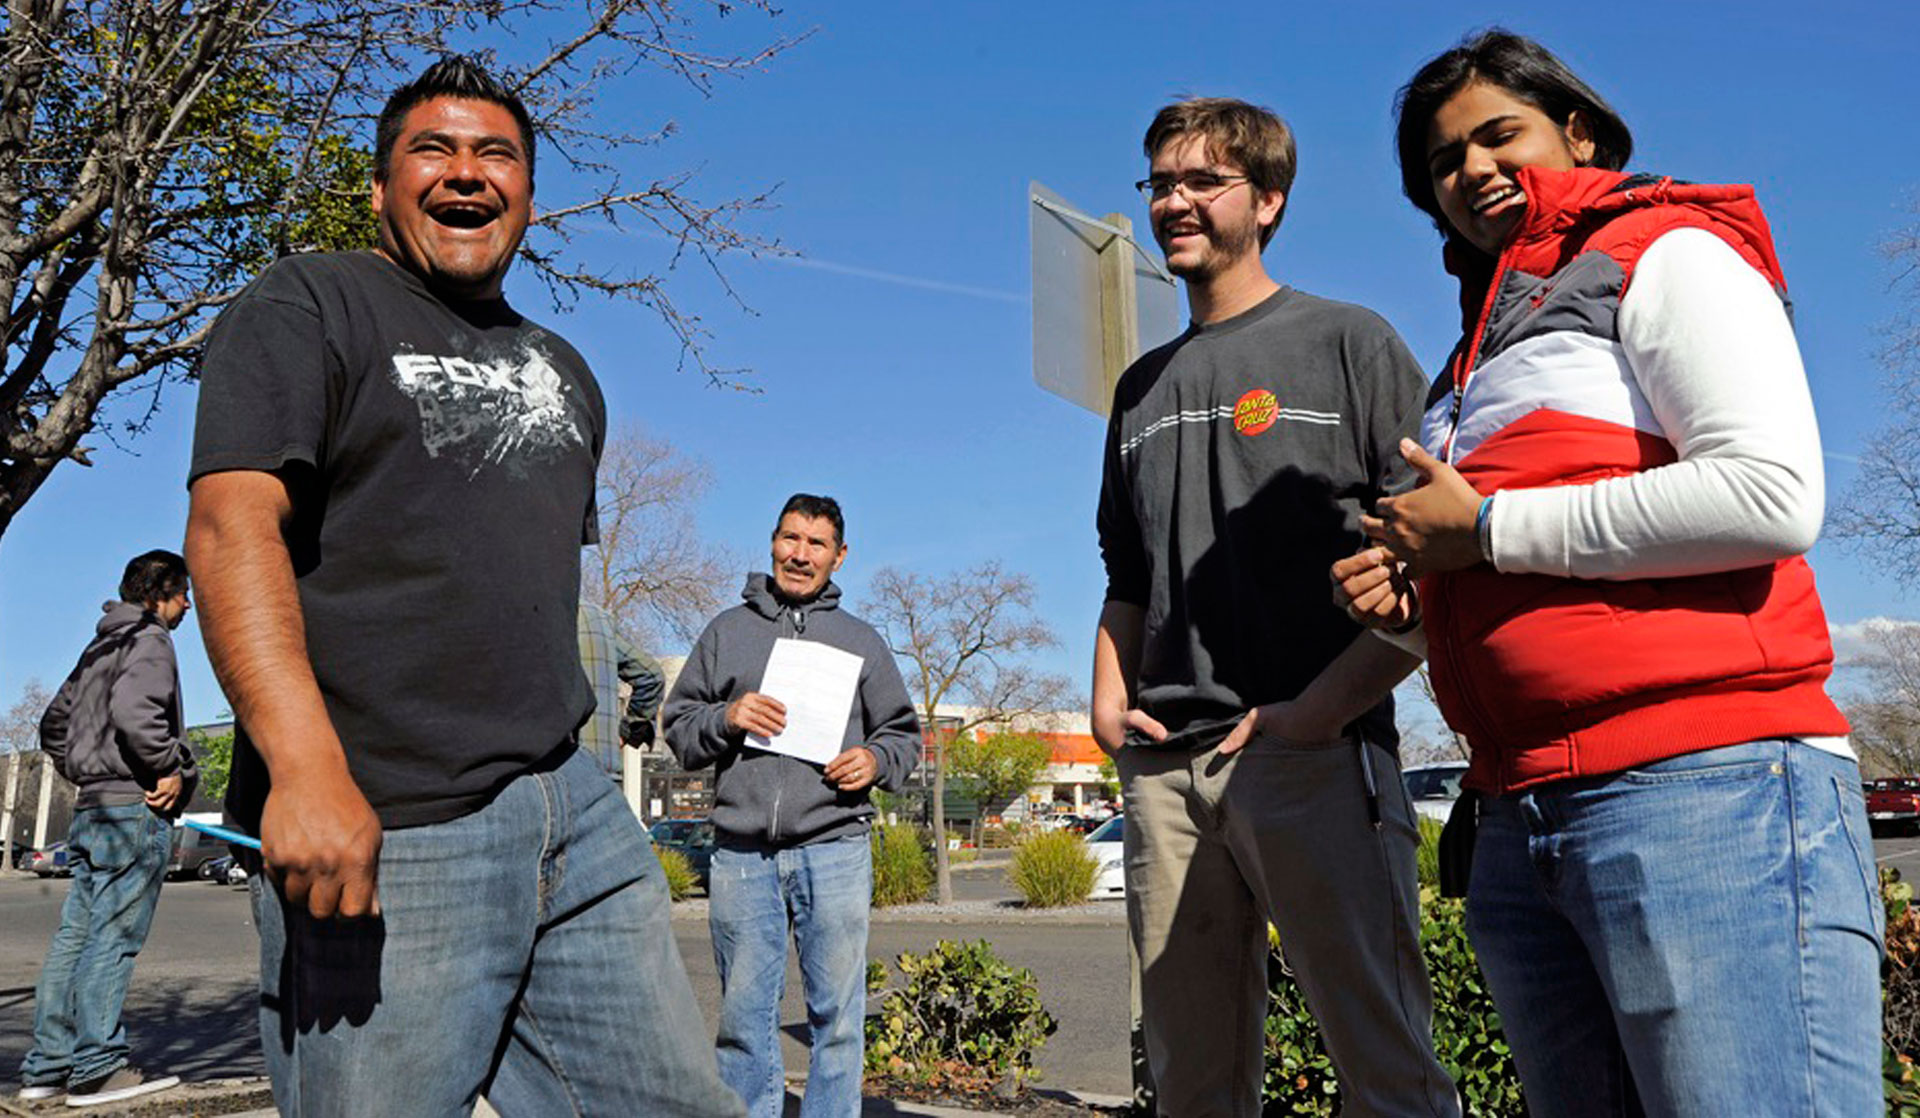 Day laborer Pedro Flores (L) and students Wyatt Irmen and Nimra Syed take part in the intercambio.